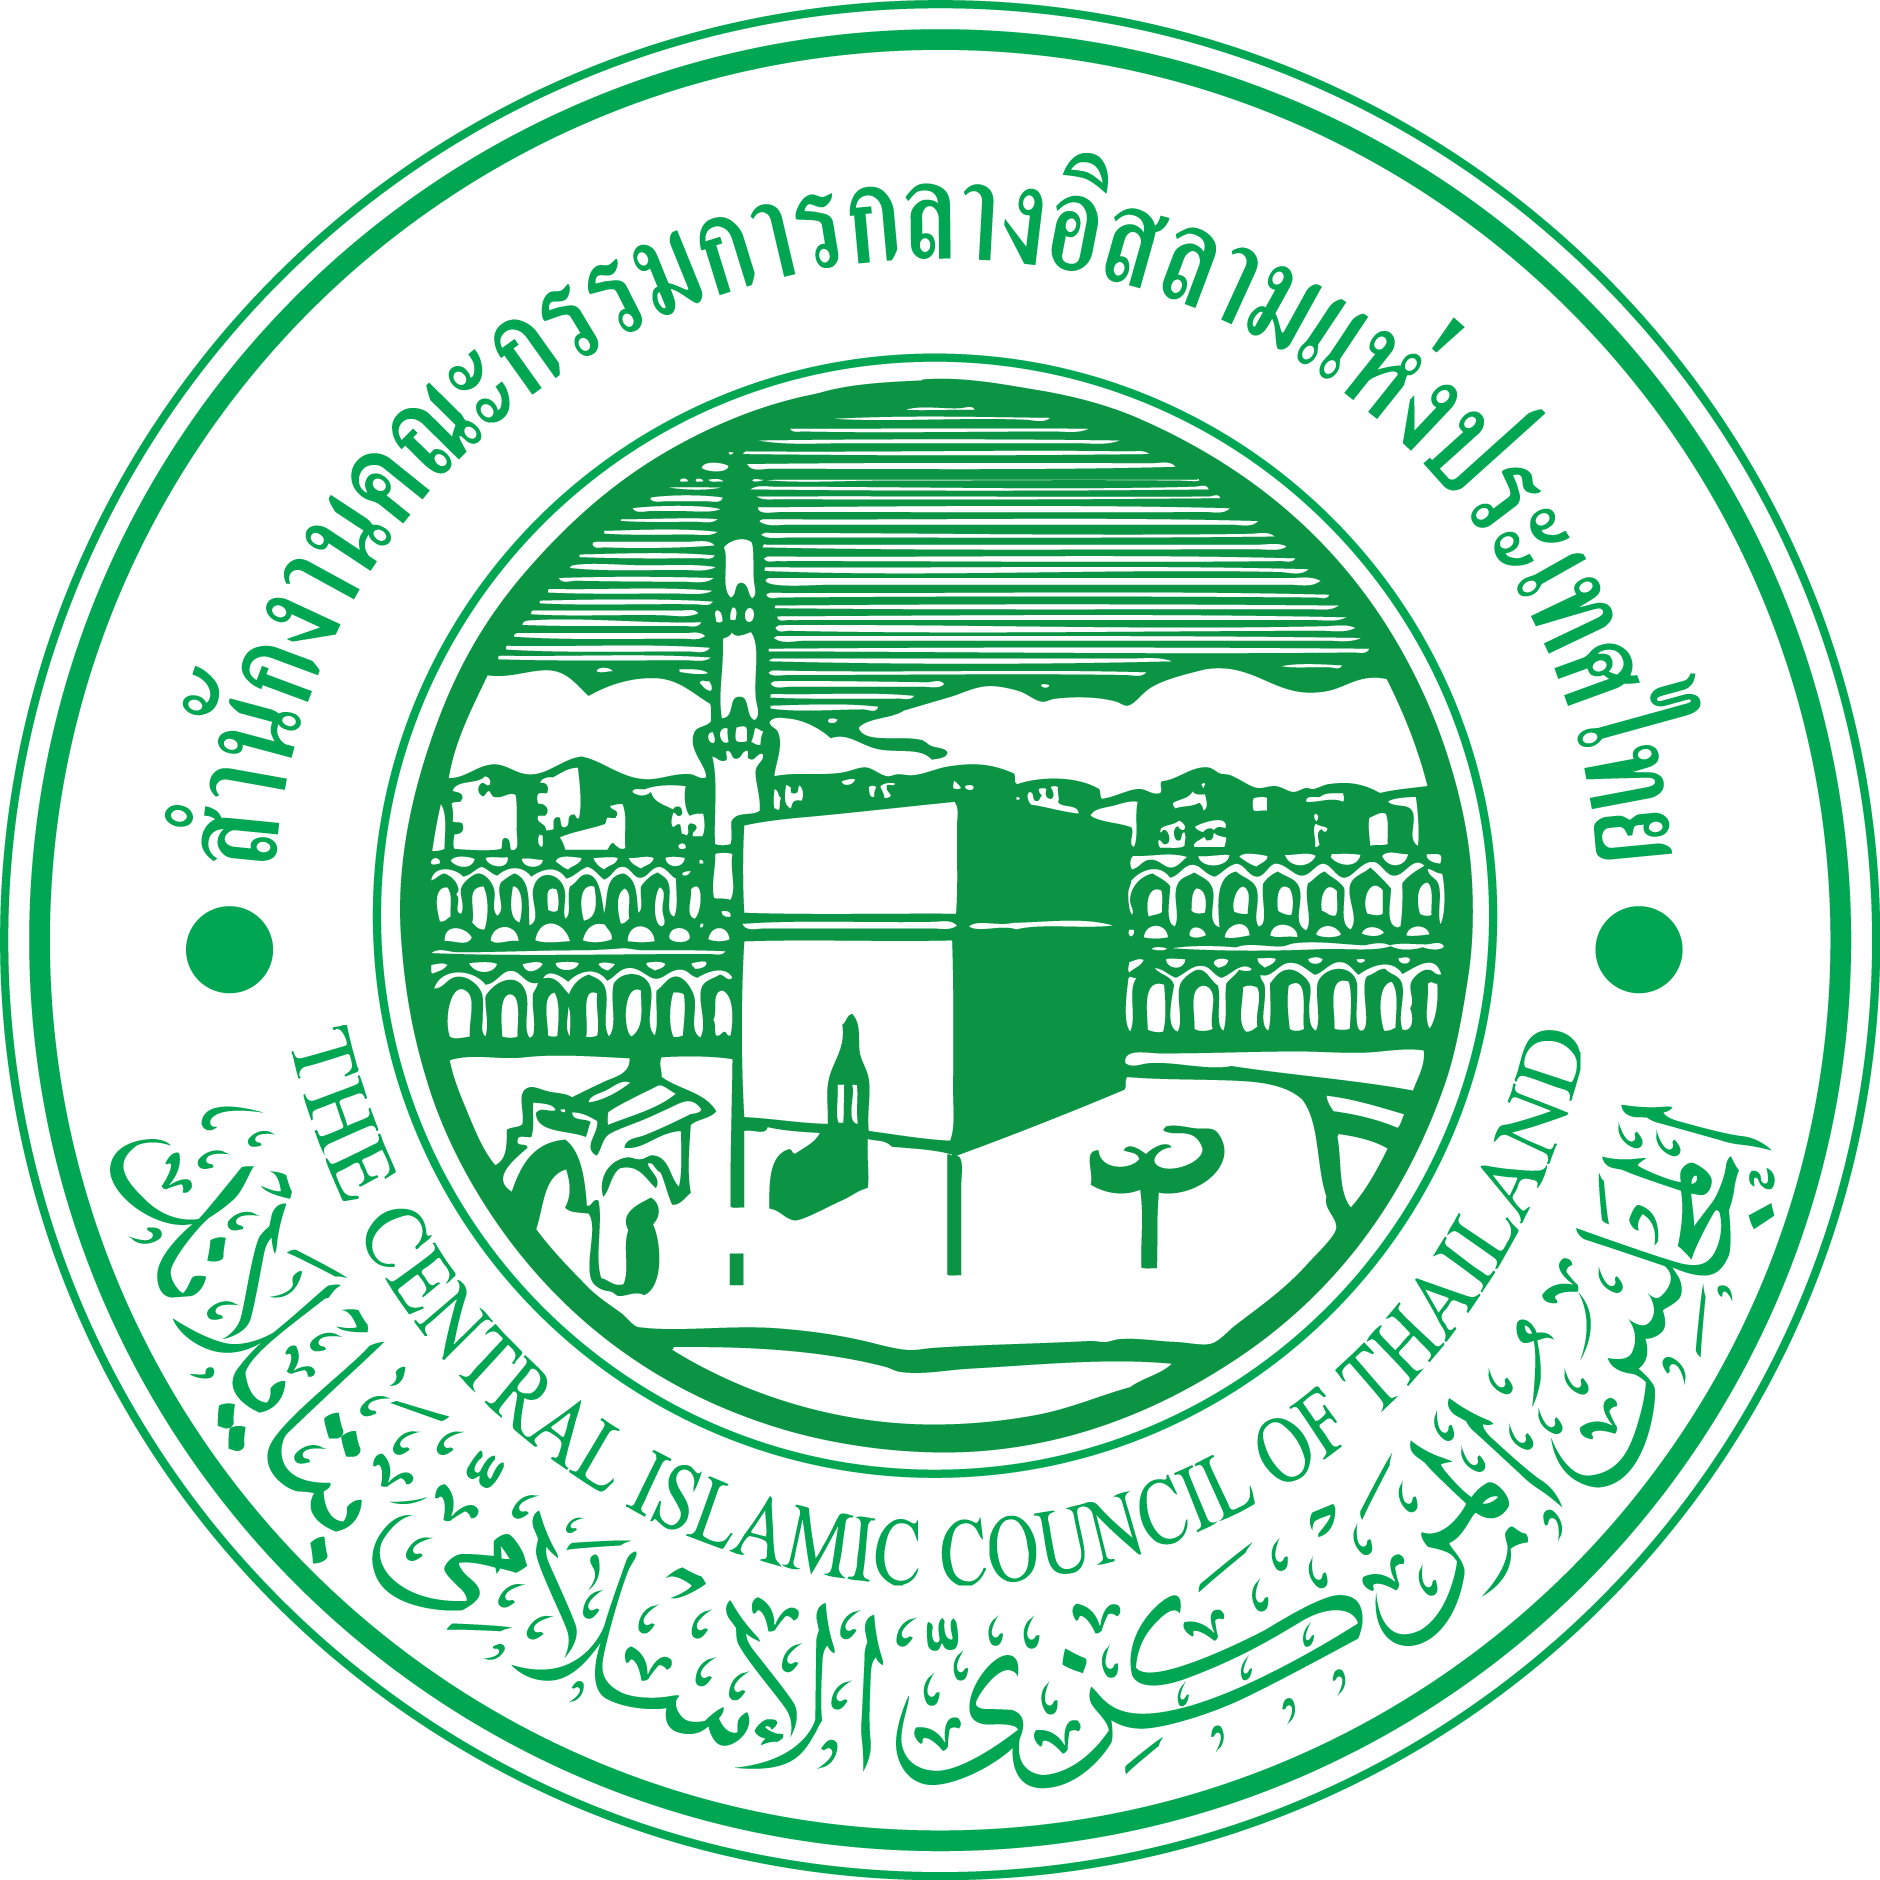 THE CENTRAL ISLAMIC COUNCIL OF THAILAND (CICOT)